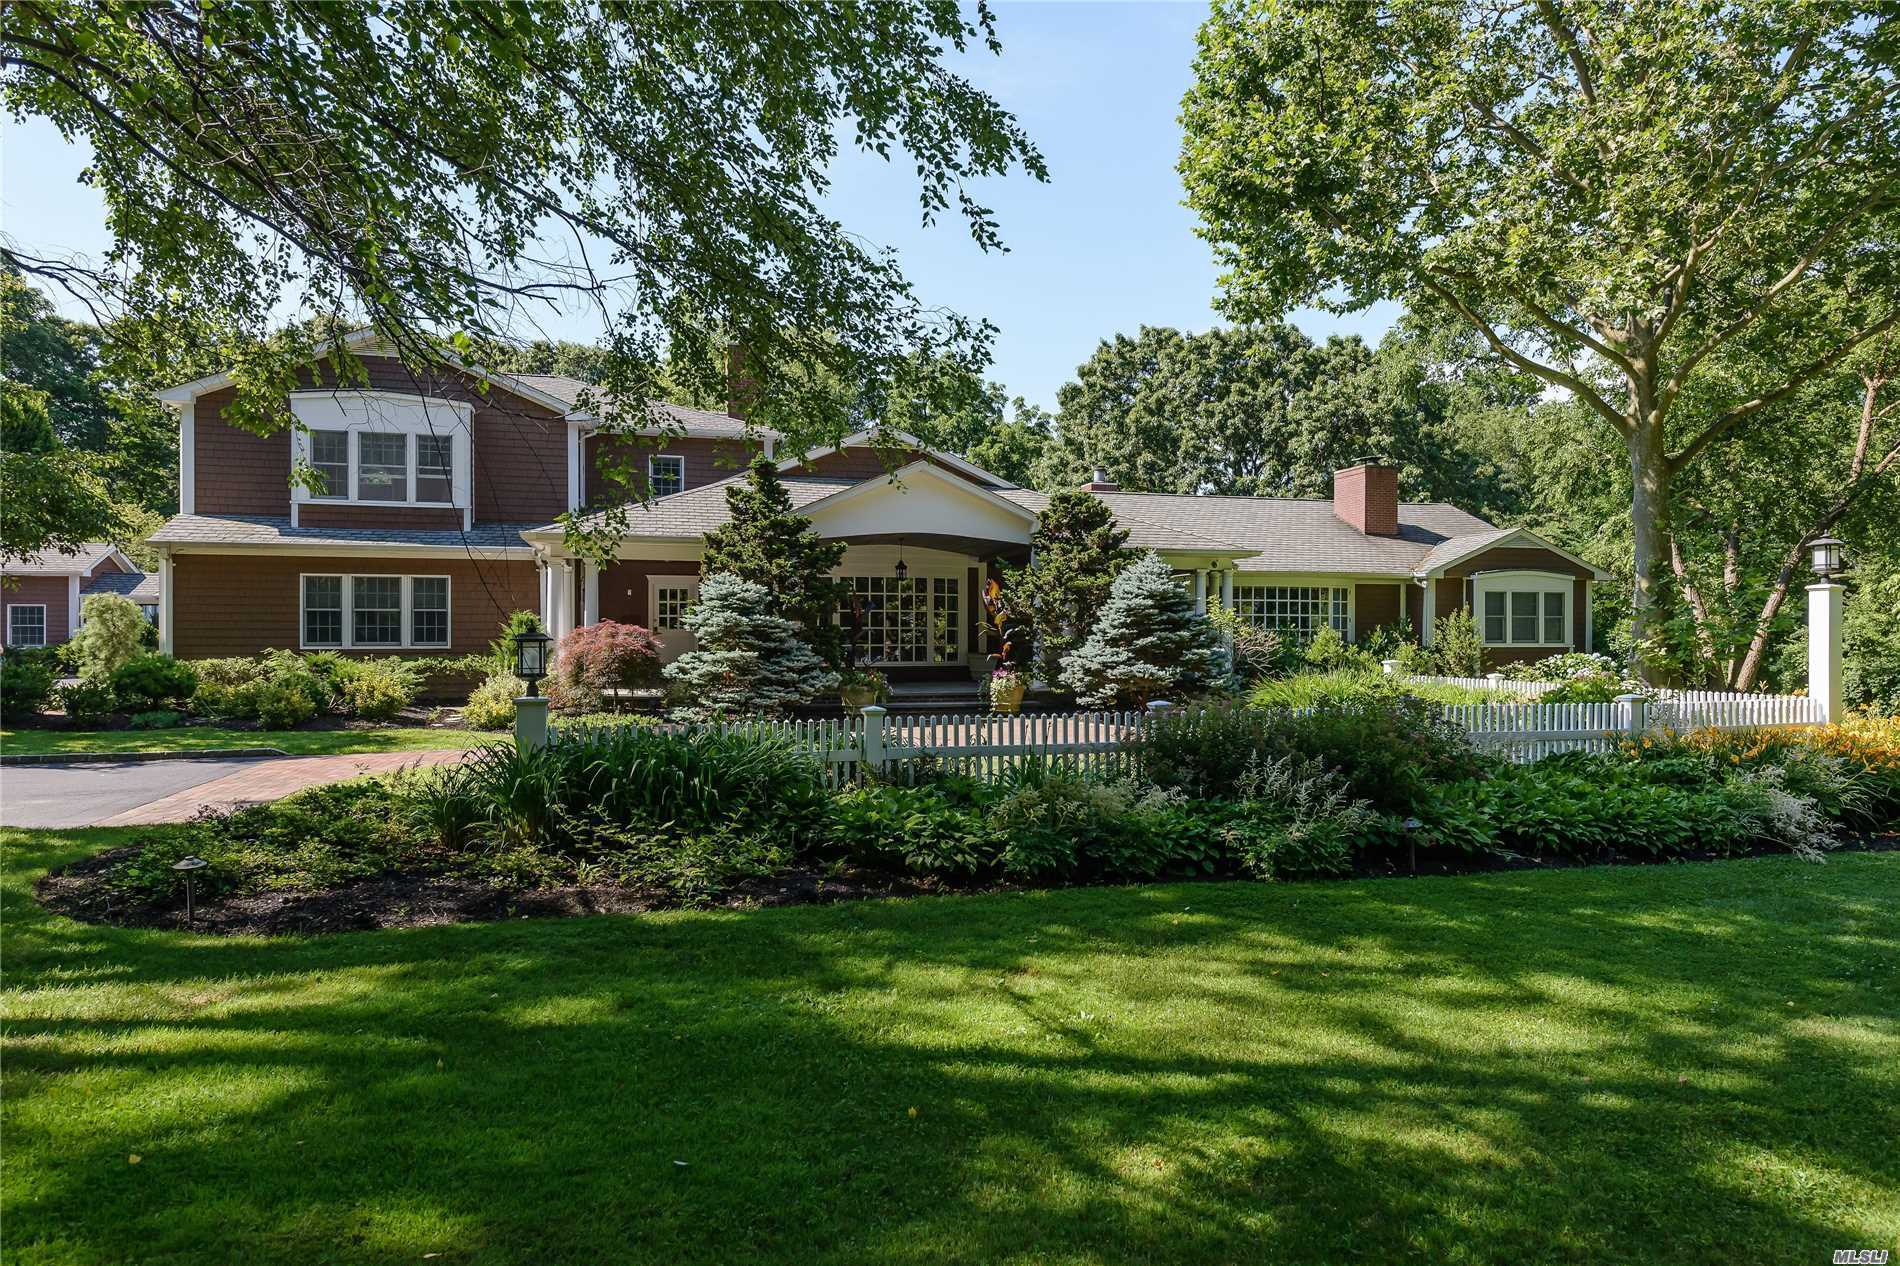 Harbor Acres Is In Sands Point And Has The Luxury Of Being Close To The Town And The Lirr. Enjoy Resort Style Living In This Hampton's Inspired Luxury Home.The Residence Features An Open Floor Plan, Landscaped Grounds With An In-Ground Heated Pool And Separate Pool Cabana. The Cabana Overlooks The Pool And Features A Family Room With Fireplace, Bedroom And Full Bath. Beach, Tennis And Recreation Thru Harbor Acres Property Owner's Association.